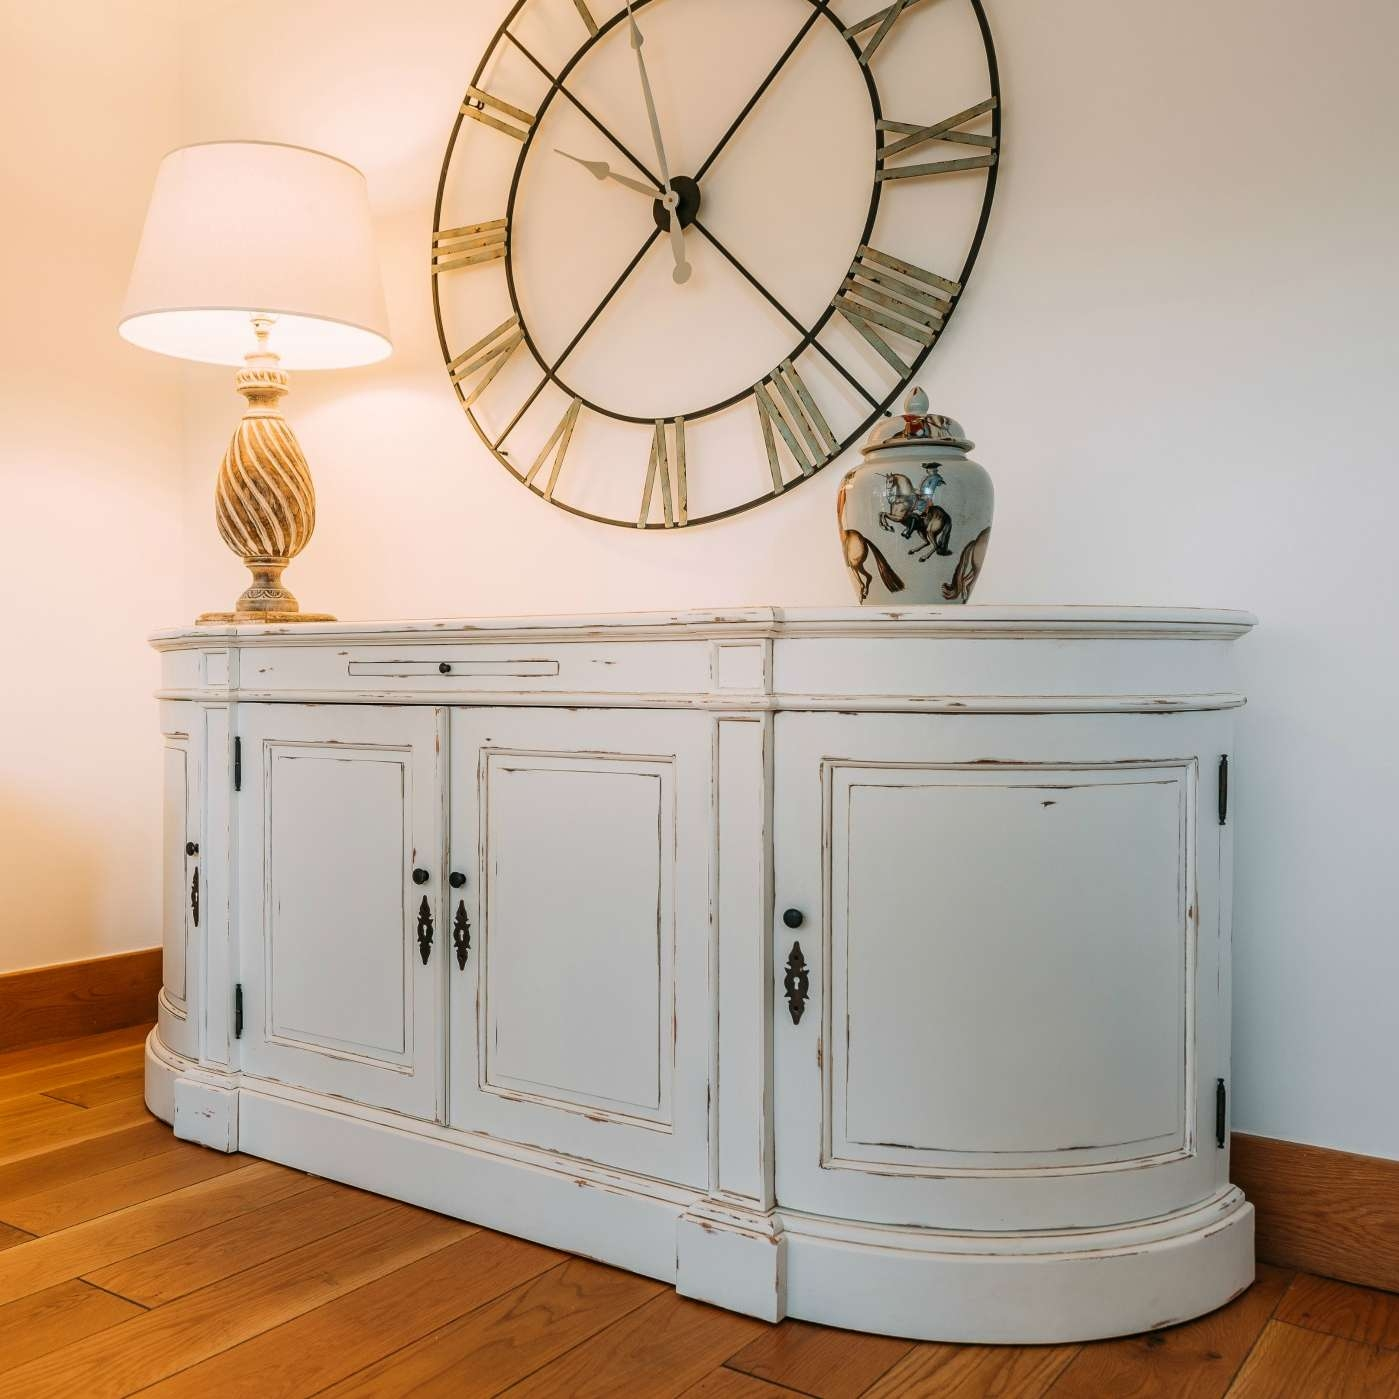 Aged French Distressed White Large Sideboard Furniture – La Maison Intended For Large Sideboards (View 4 of 20)